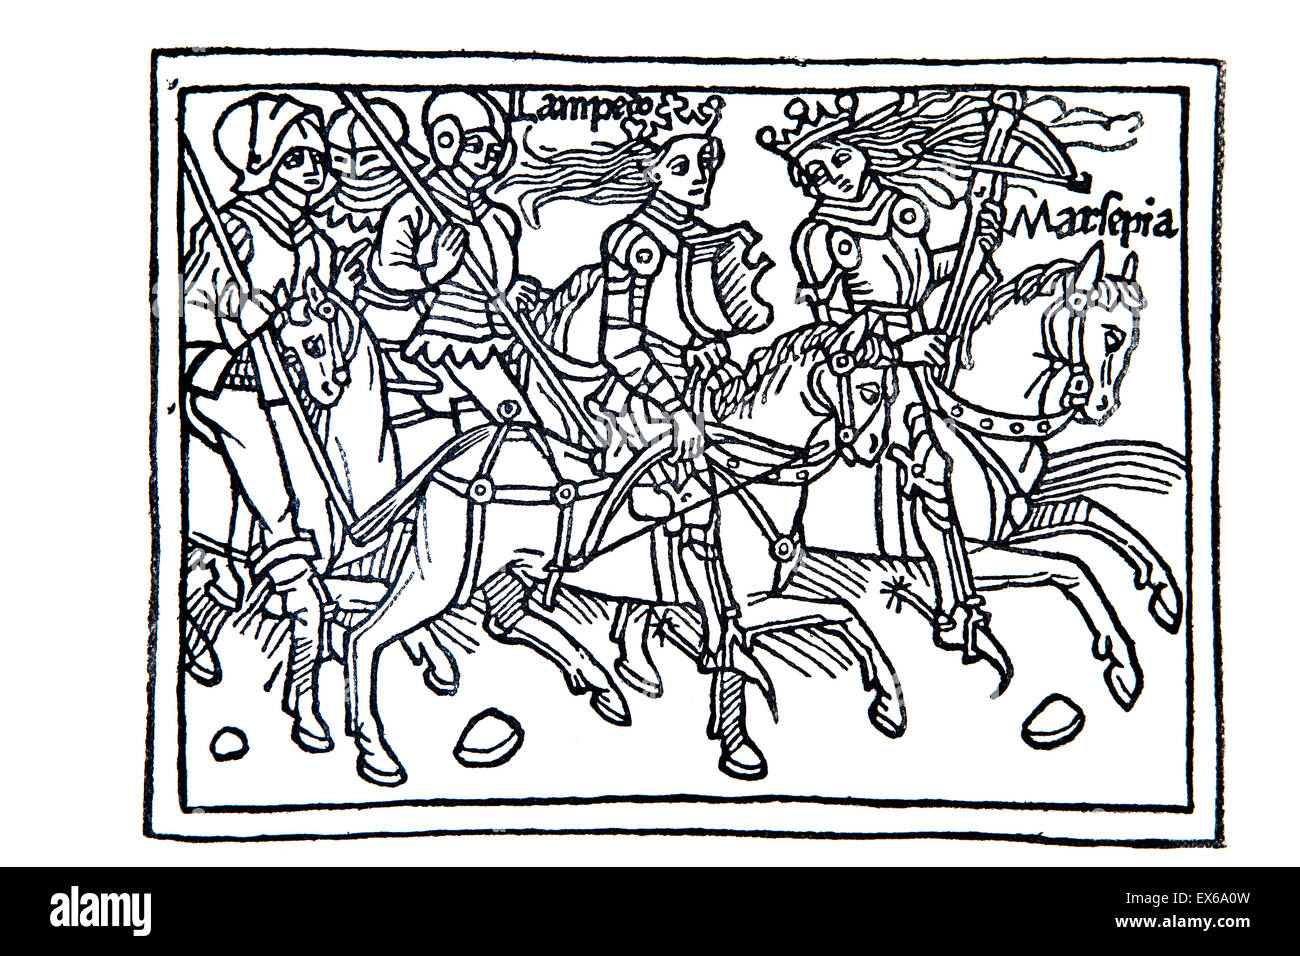 Knights in armour on horseback woodcut from Boccaccio's de claris mulieribus (on famous women), published in - Stock Image